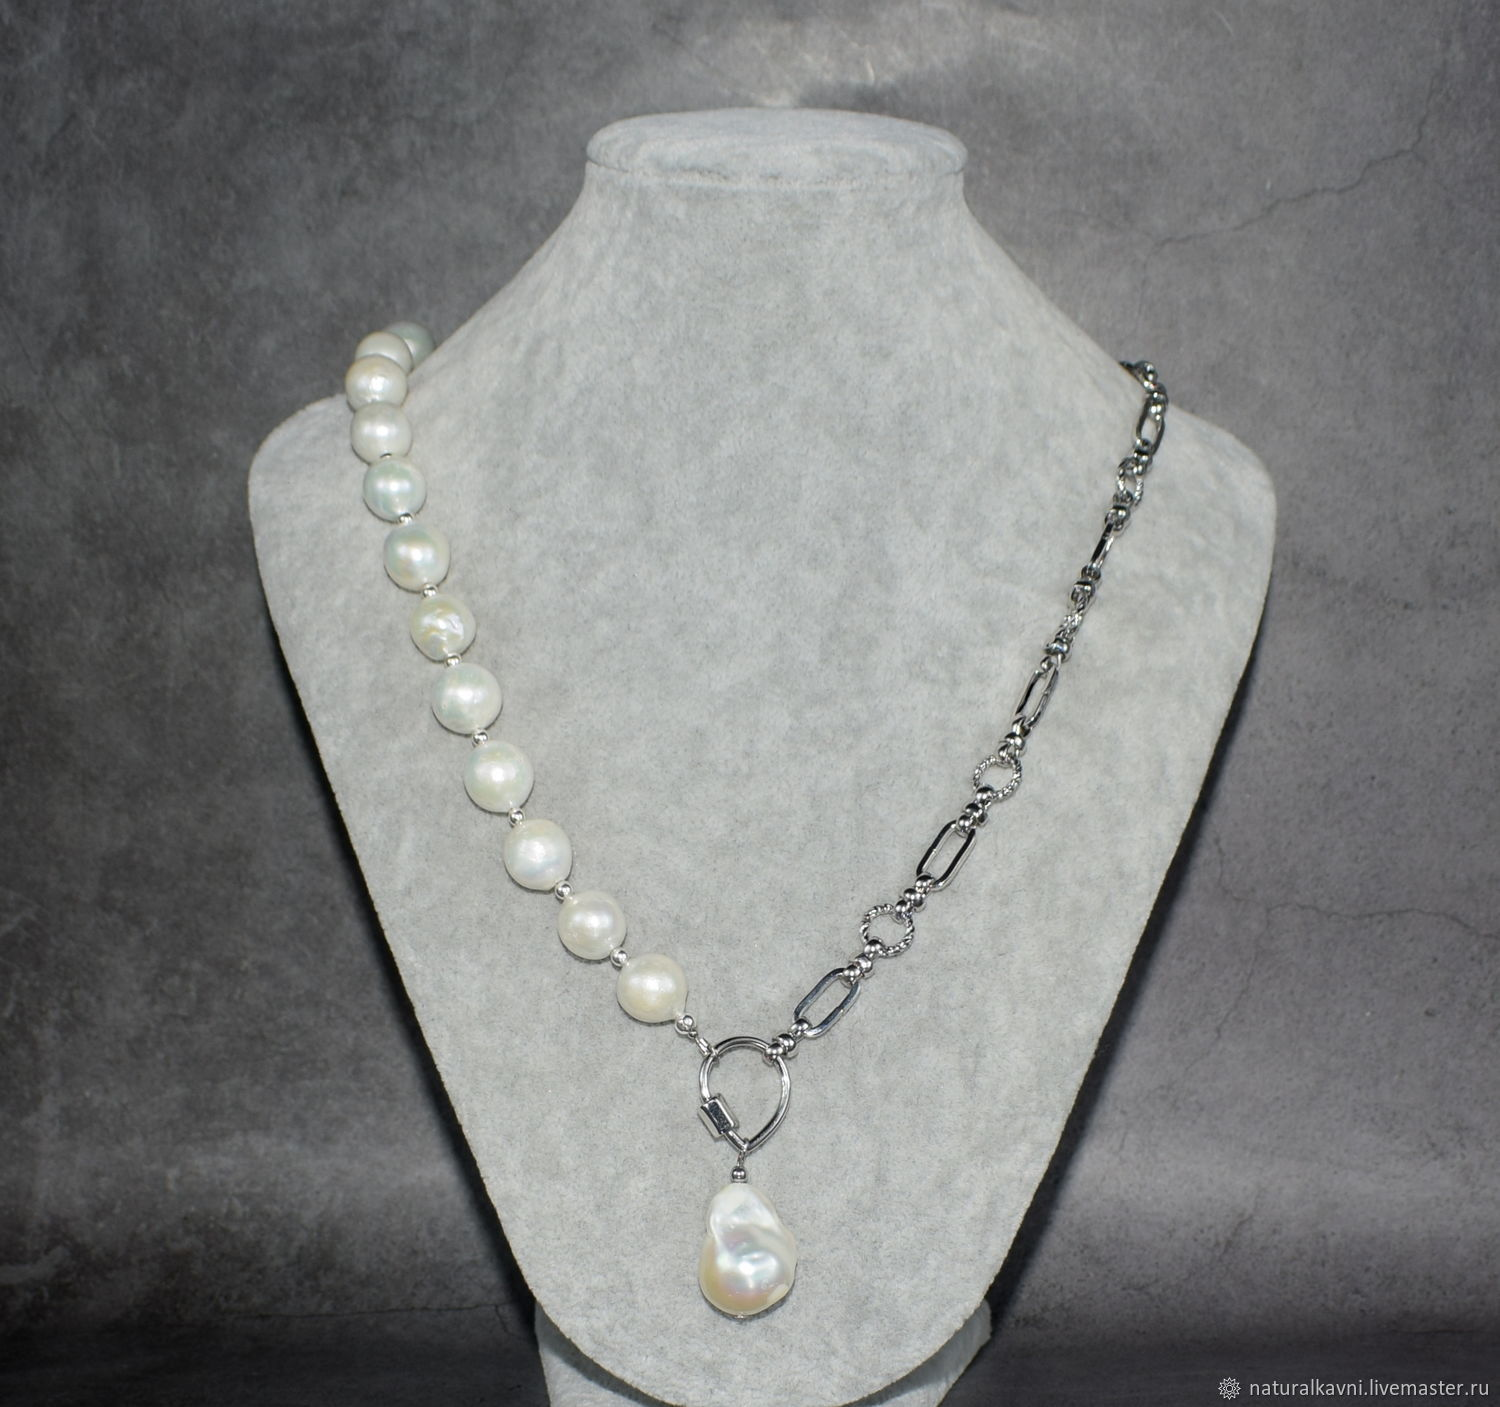 Necklace made of natural pearls, chains and pendants made of baroque w, Beads2, Moscow,  Фото №1